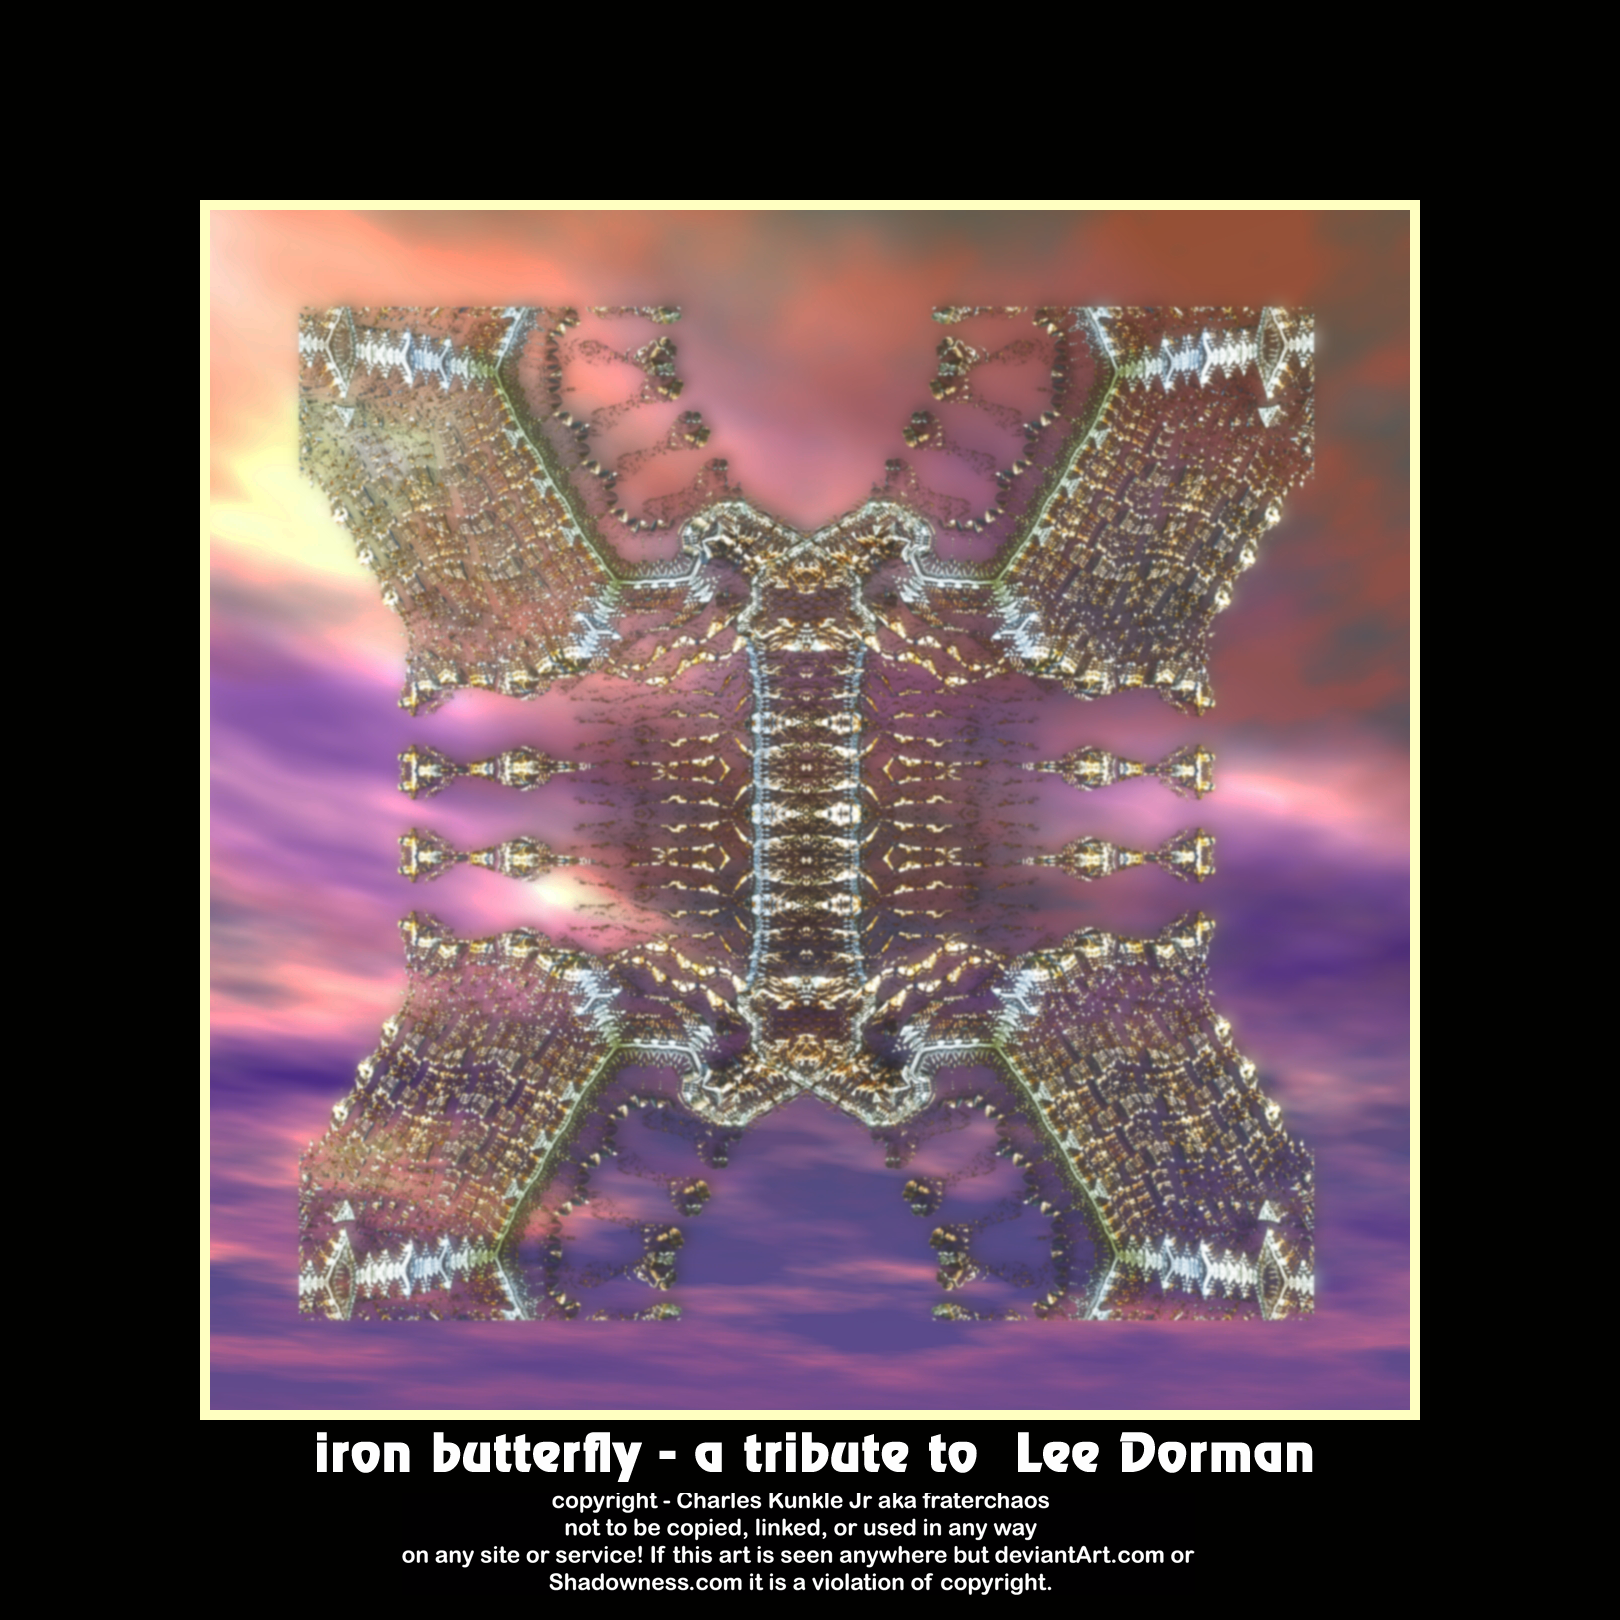 iron butterfly - a tribute to Lee Dorman by fraterchaos